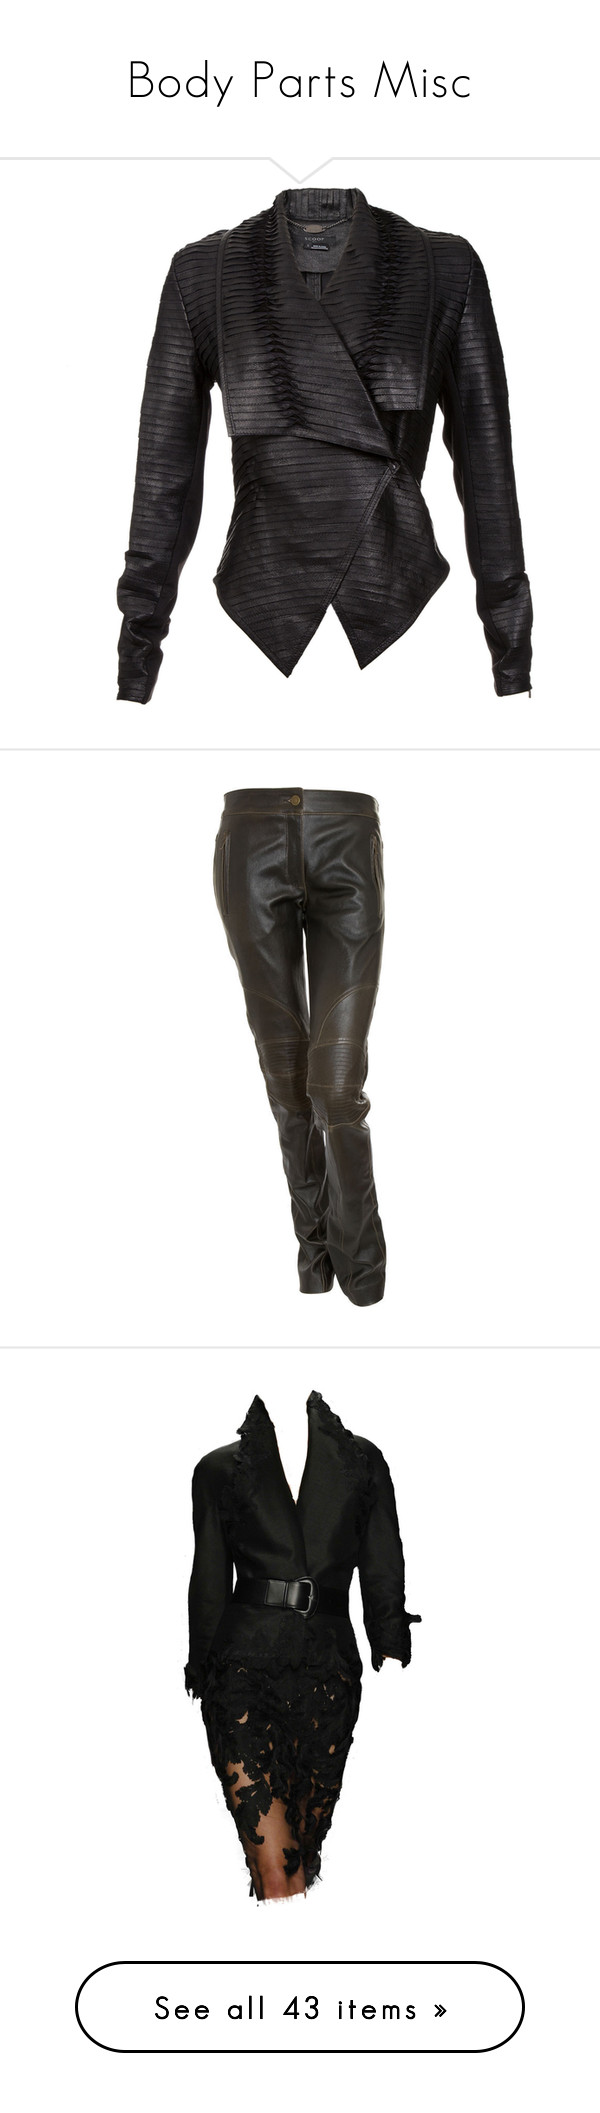 """""""Body Parts Misc"""" by enchanticals ❤ liked on Polyvore featuring outerwear, jackets, coats, leather jackets, coats & jackets, black, genuine leather jacket, real leather jacket, lapel jacket and leather lapel jacket"""